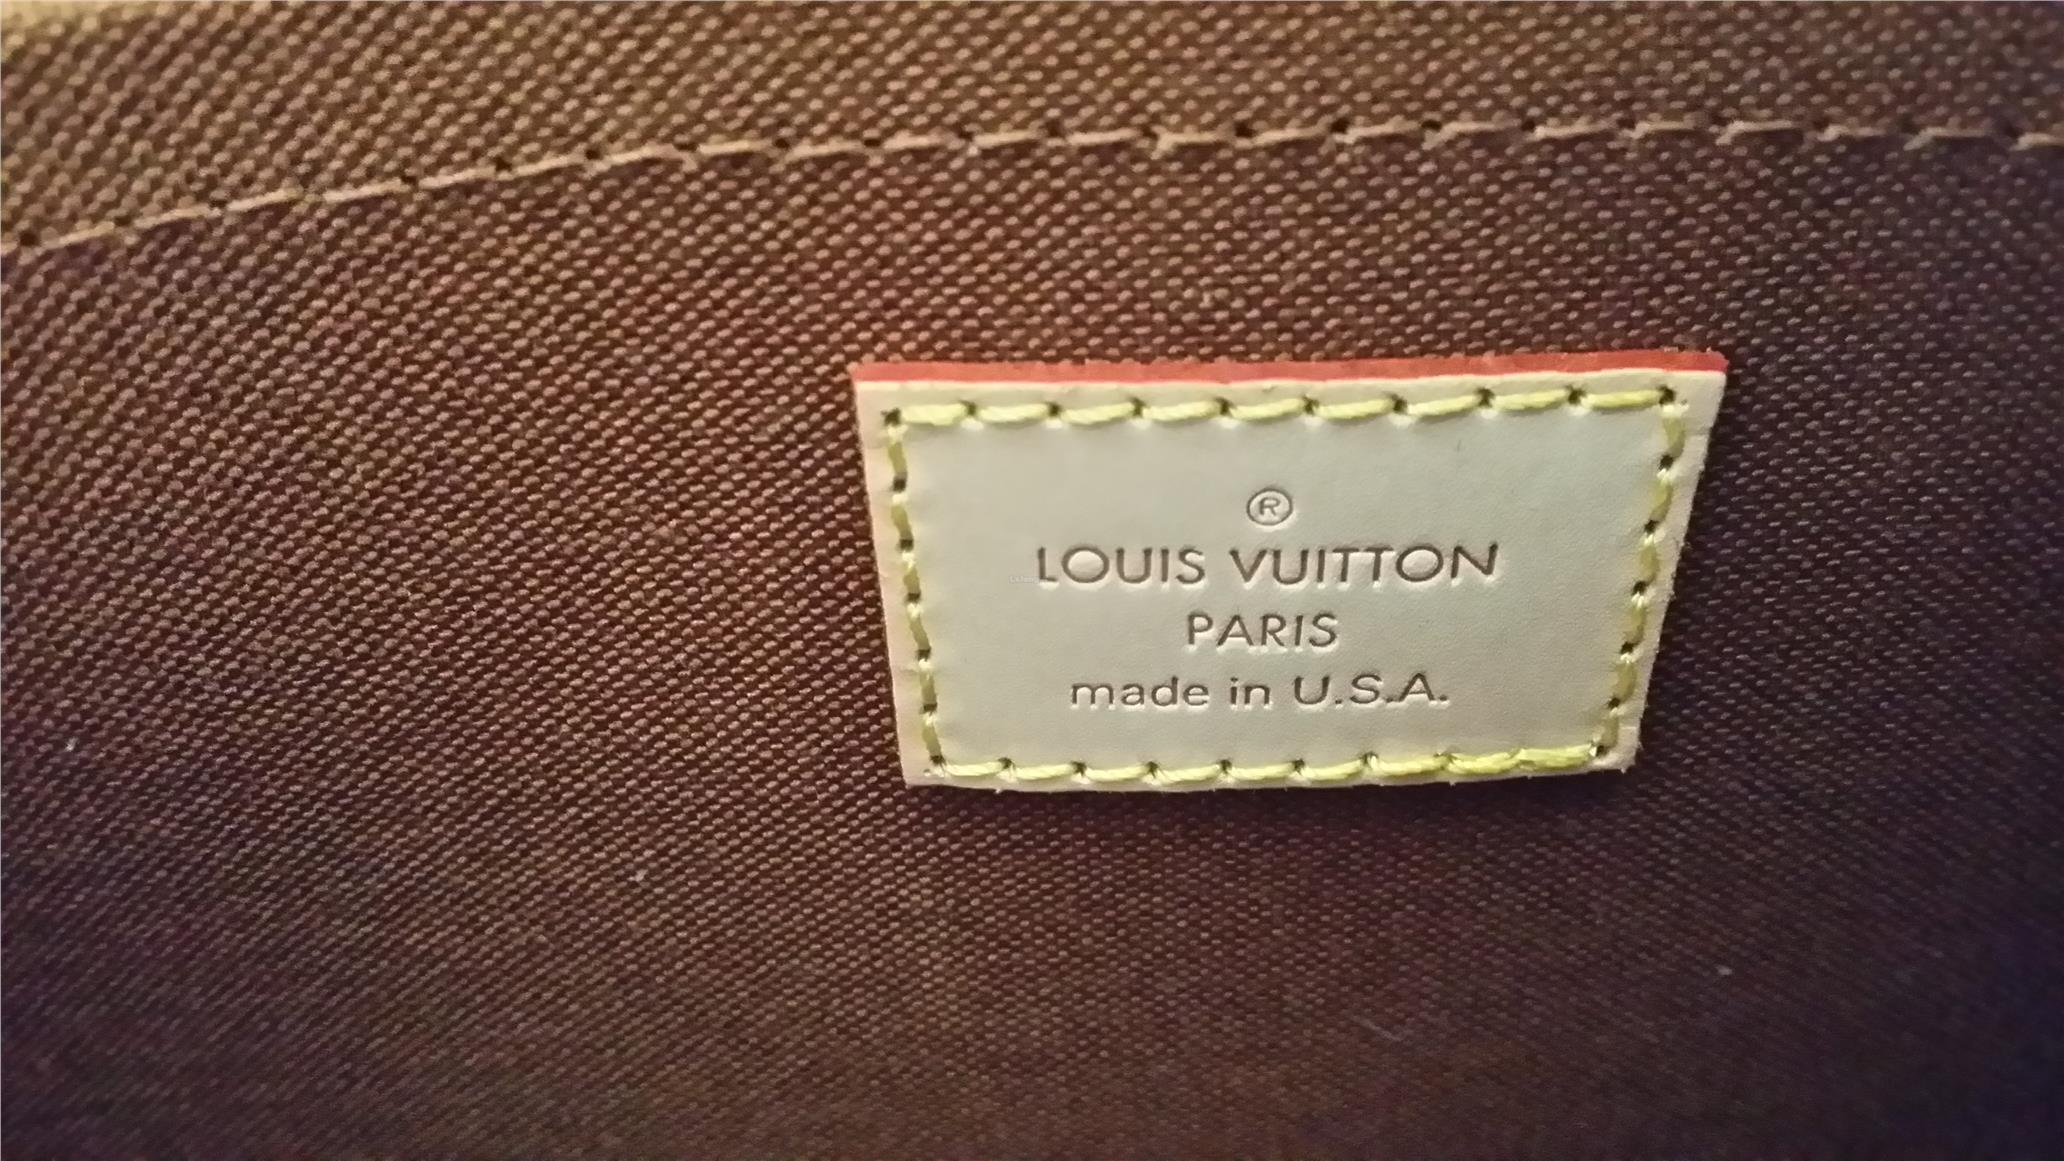 where are the louis vuitton bags made